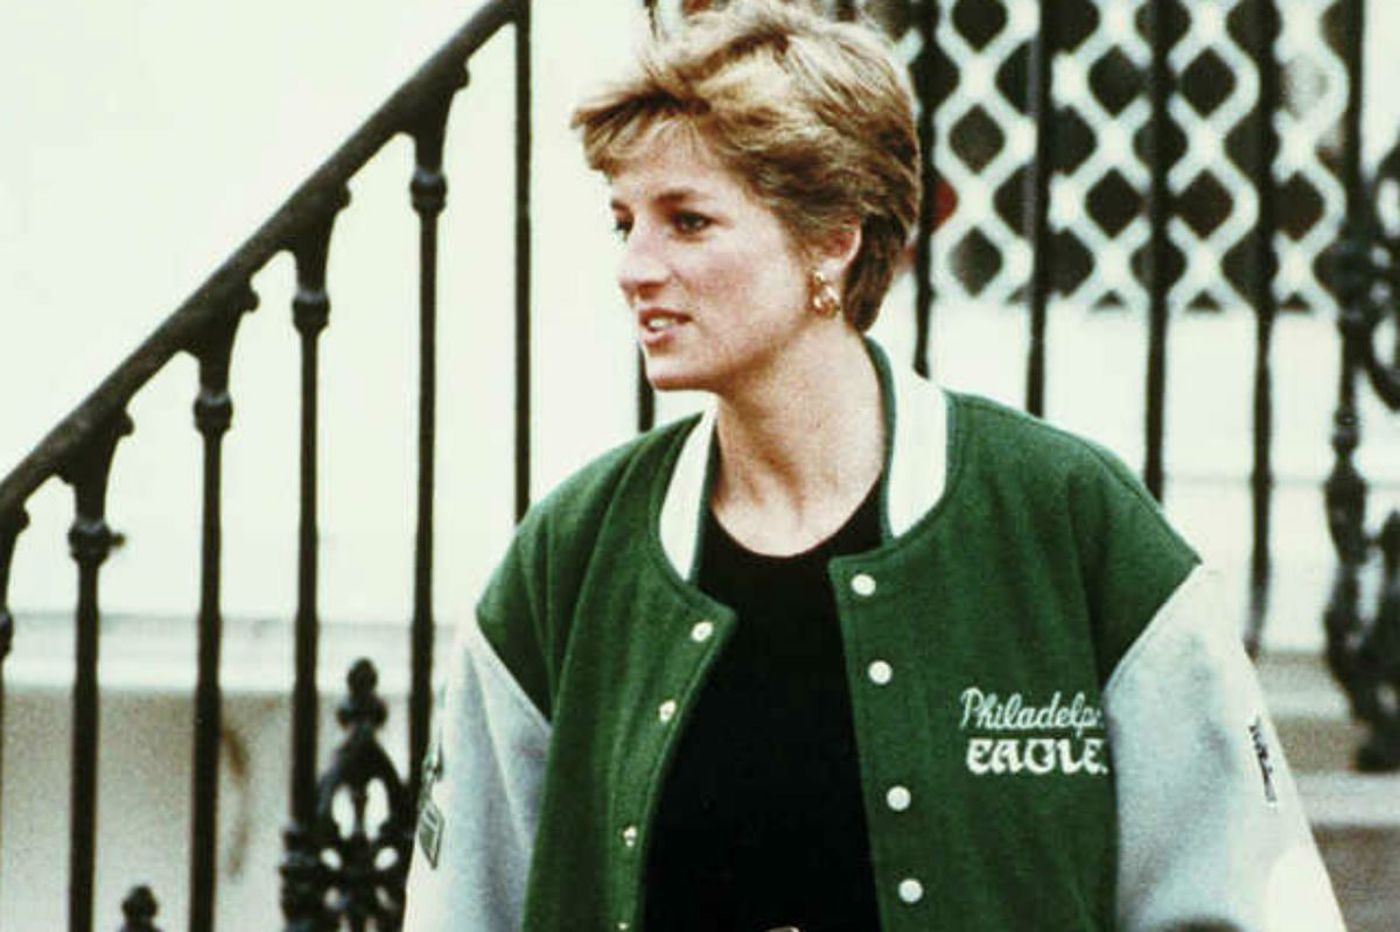 How Grace Kelly led to Princess Diana's wearing Eagles gear